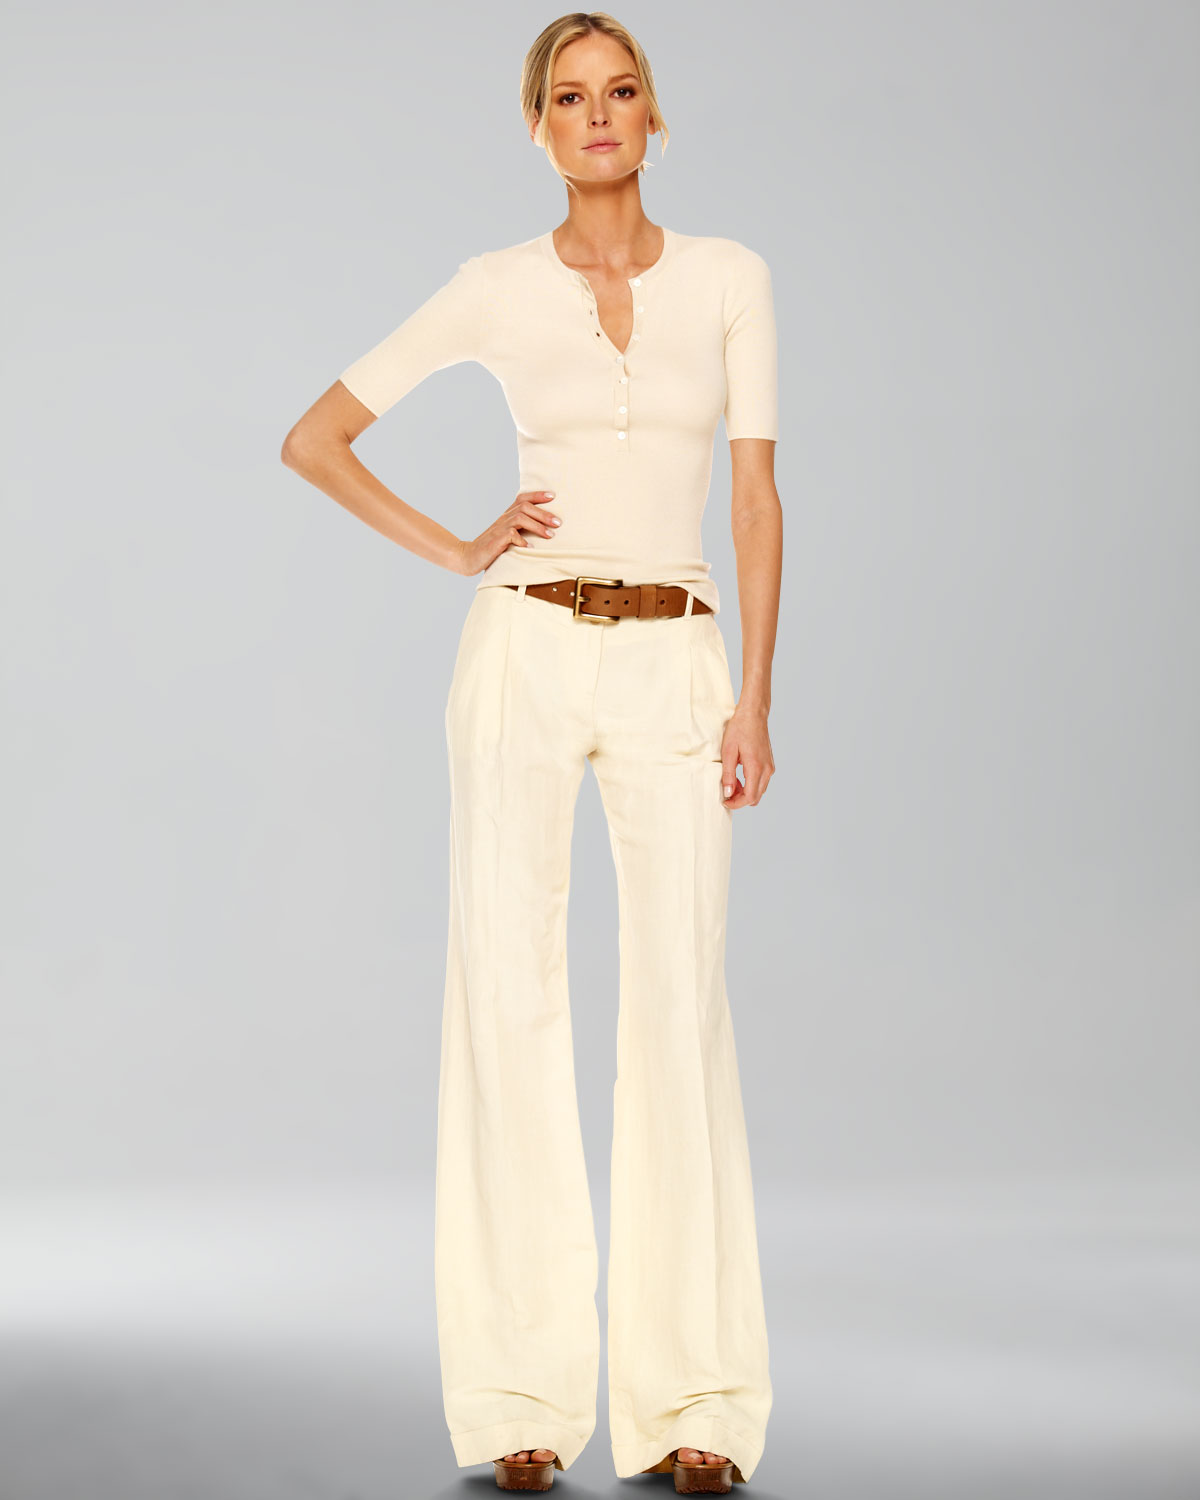 Michael kors Wide Leg Pants in White | Lyst